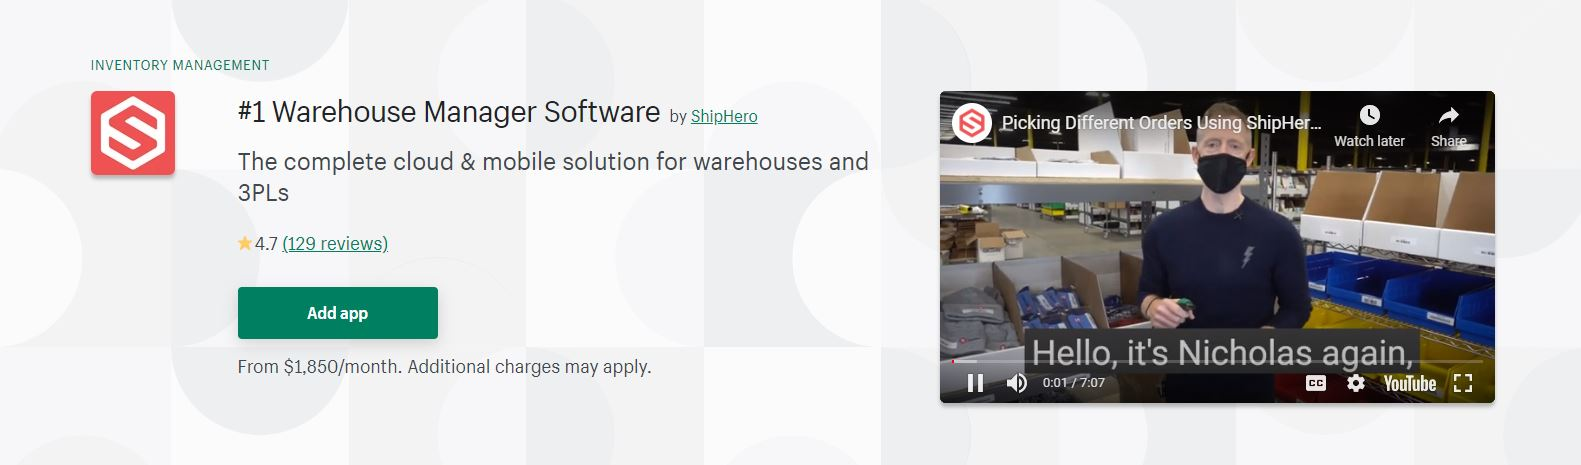 Warehouse Manager Software